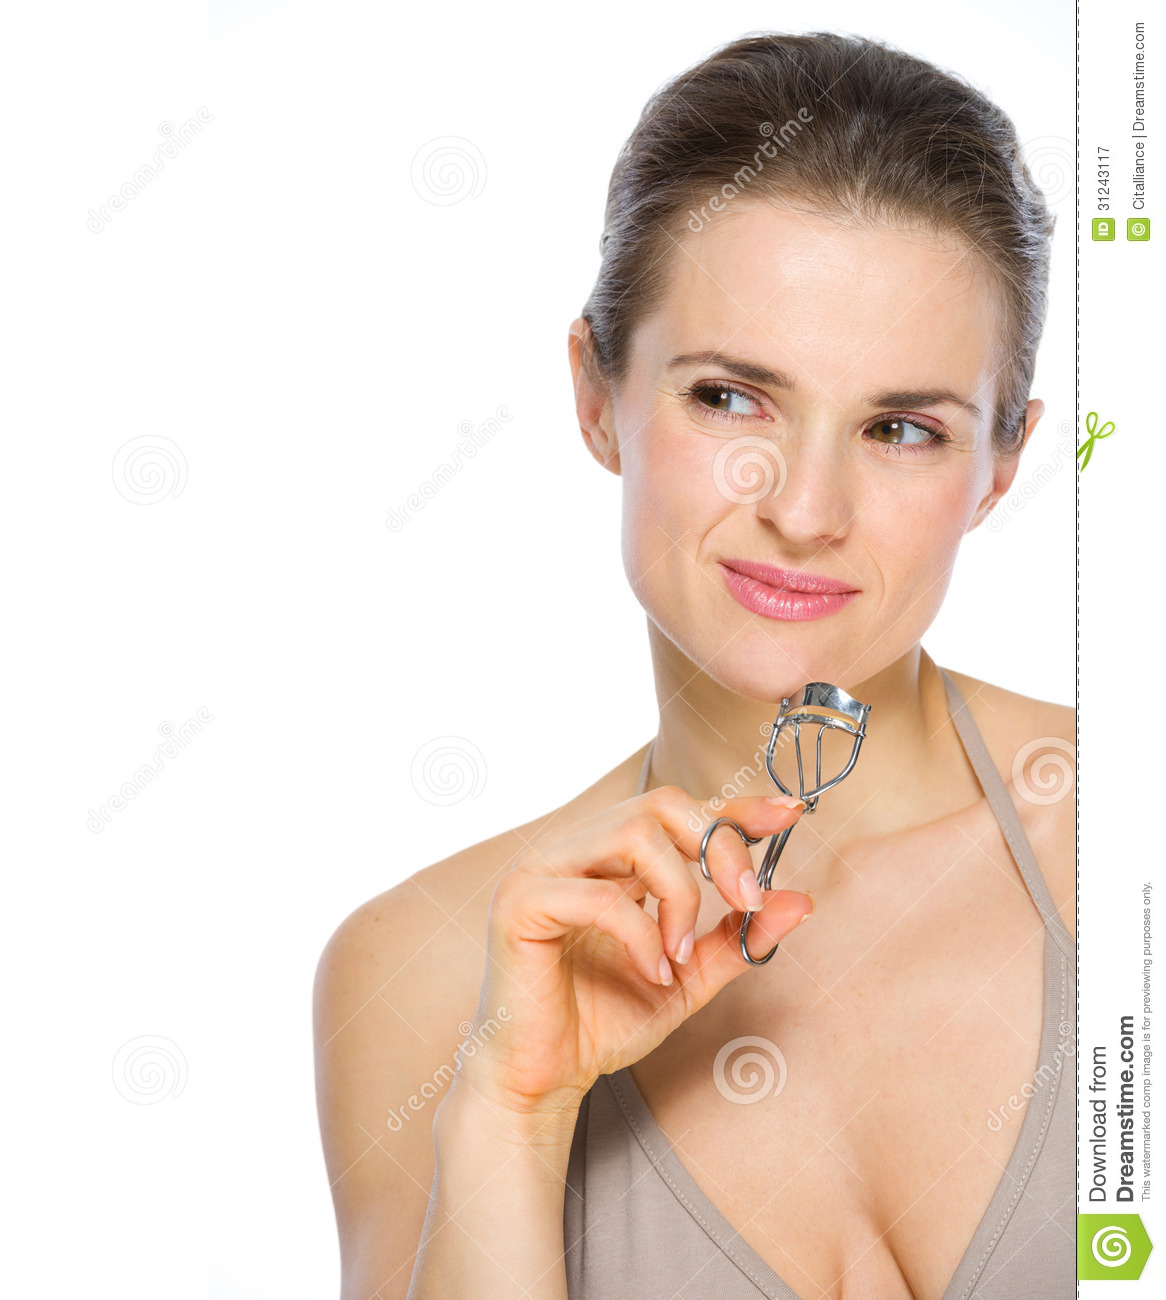 Beauty Holding It: Beauty Portrait Of Woman Holding Eyelash Curler Royalty